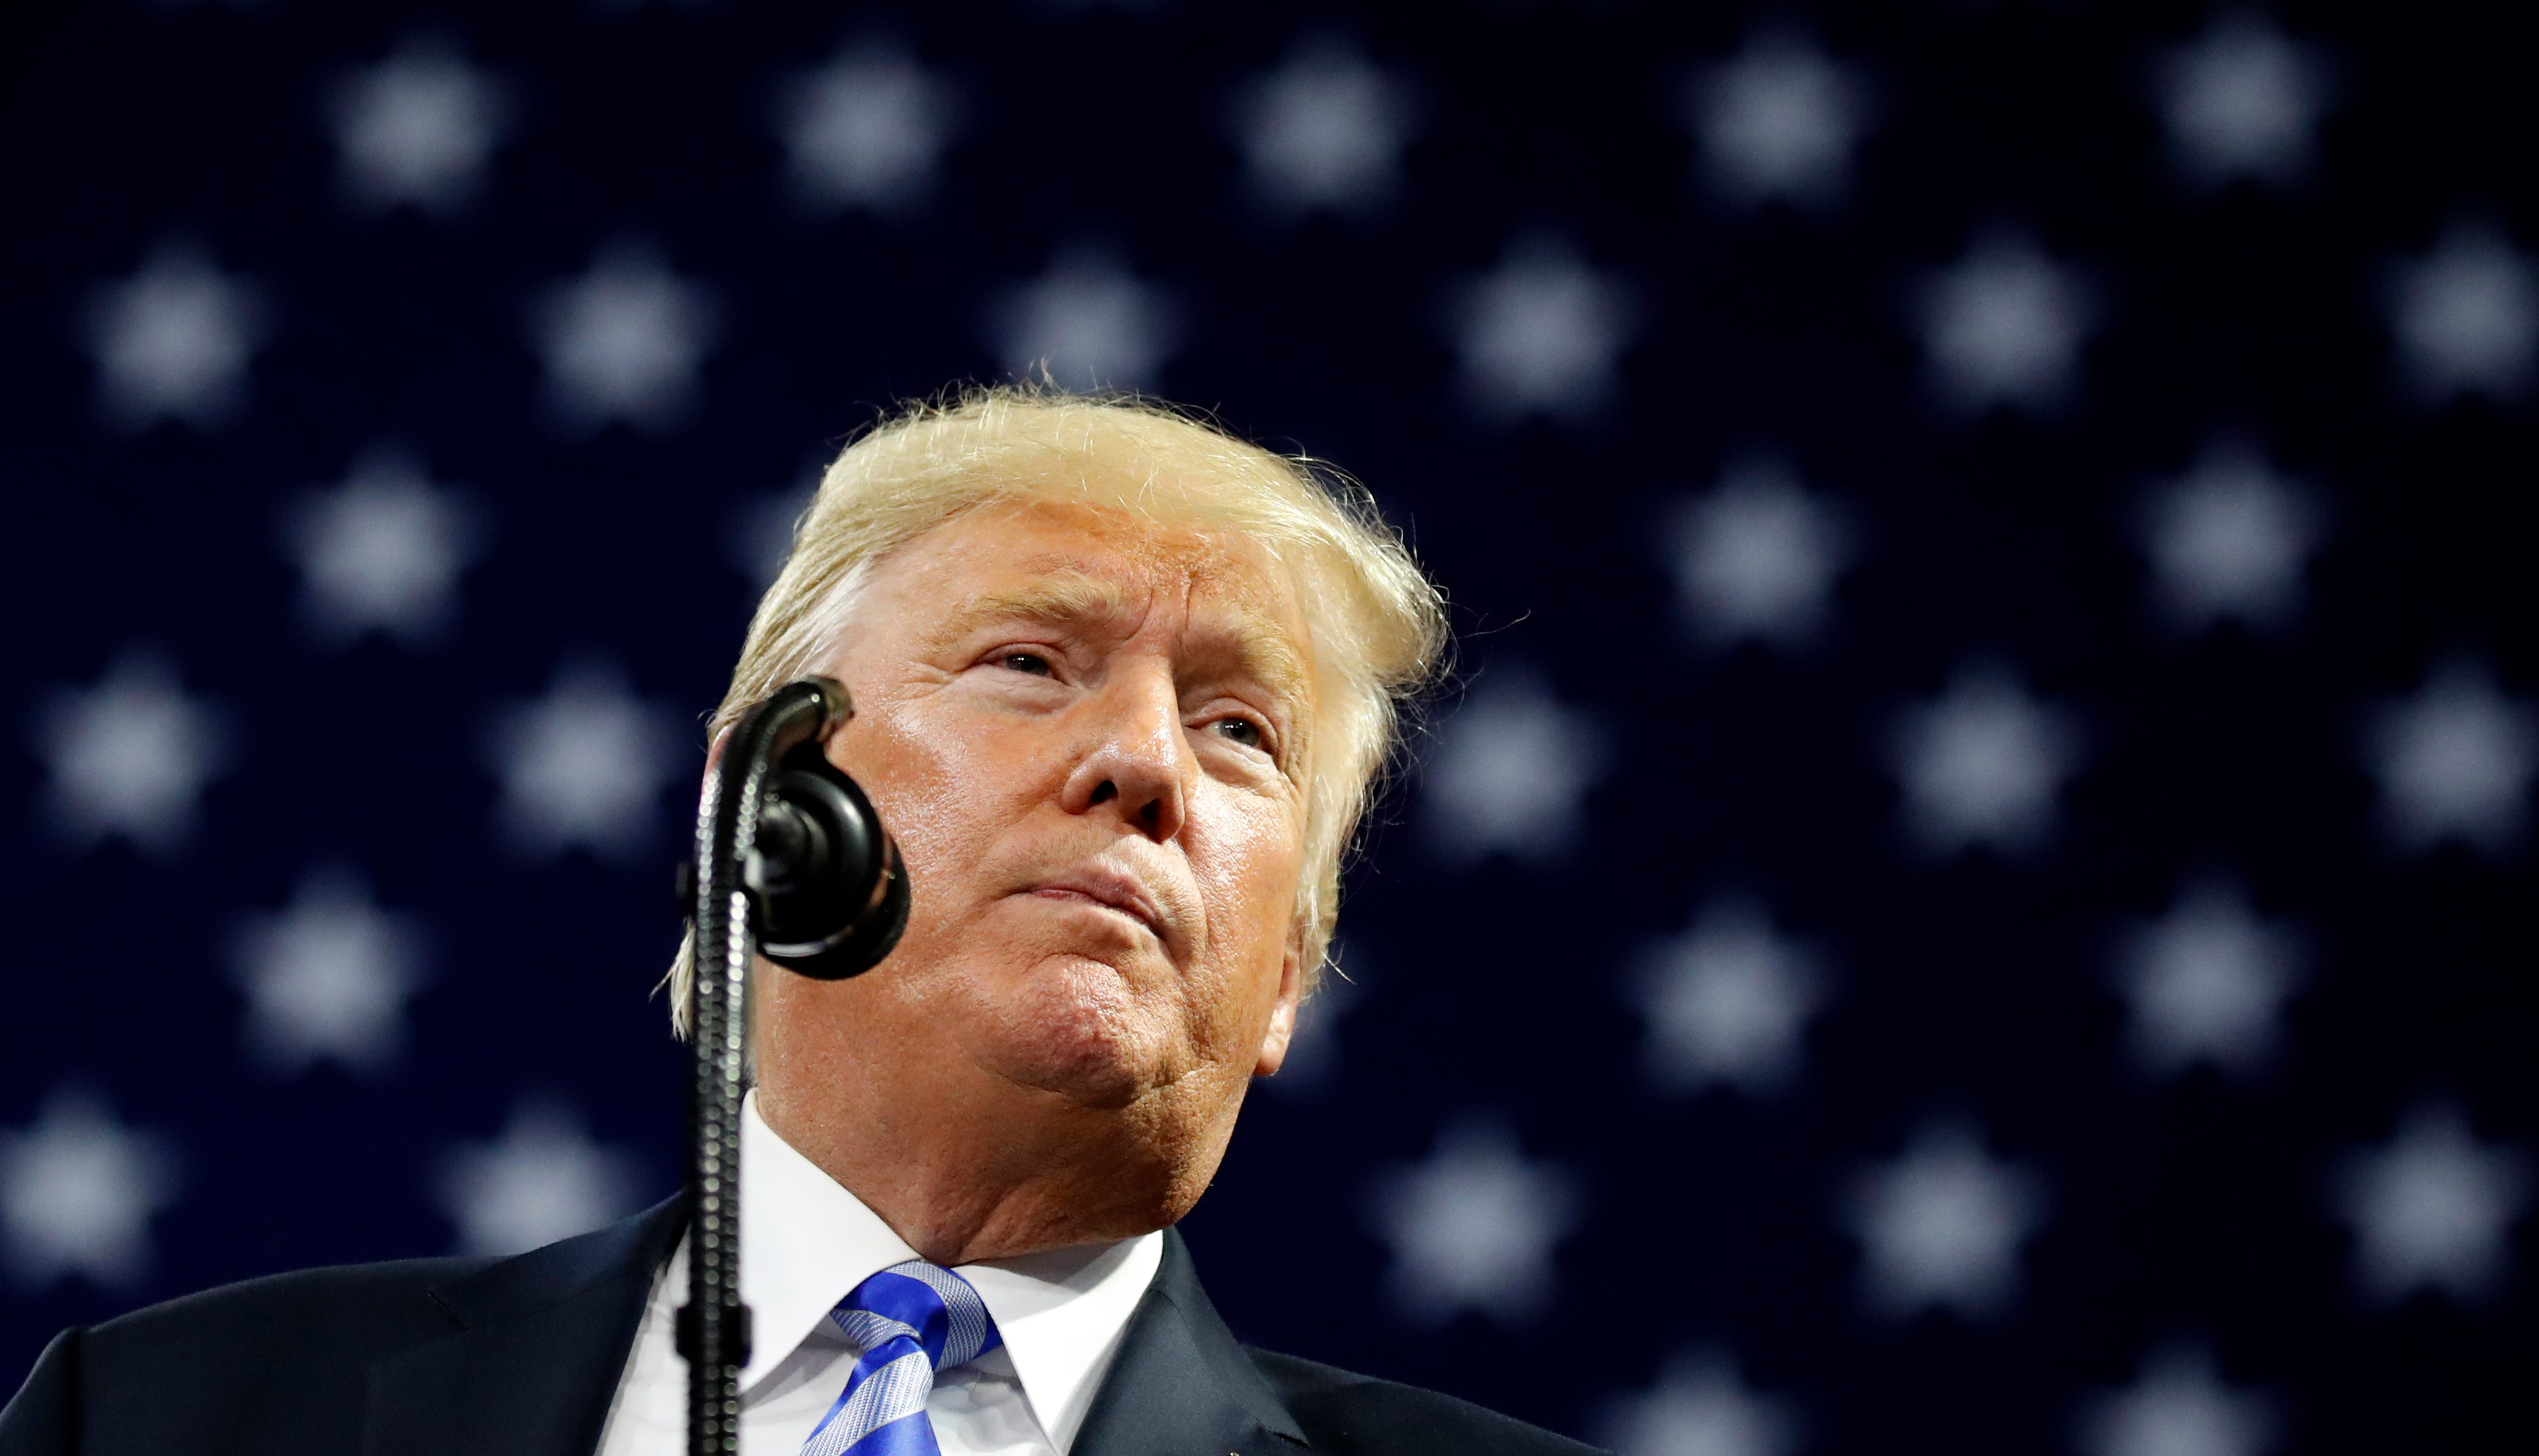 Opinion: What Republican candidates should say about Donald Trump